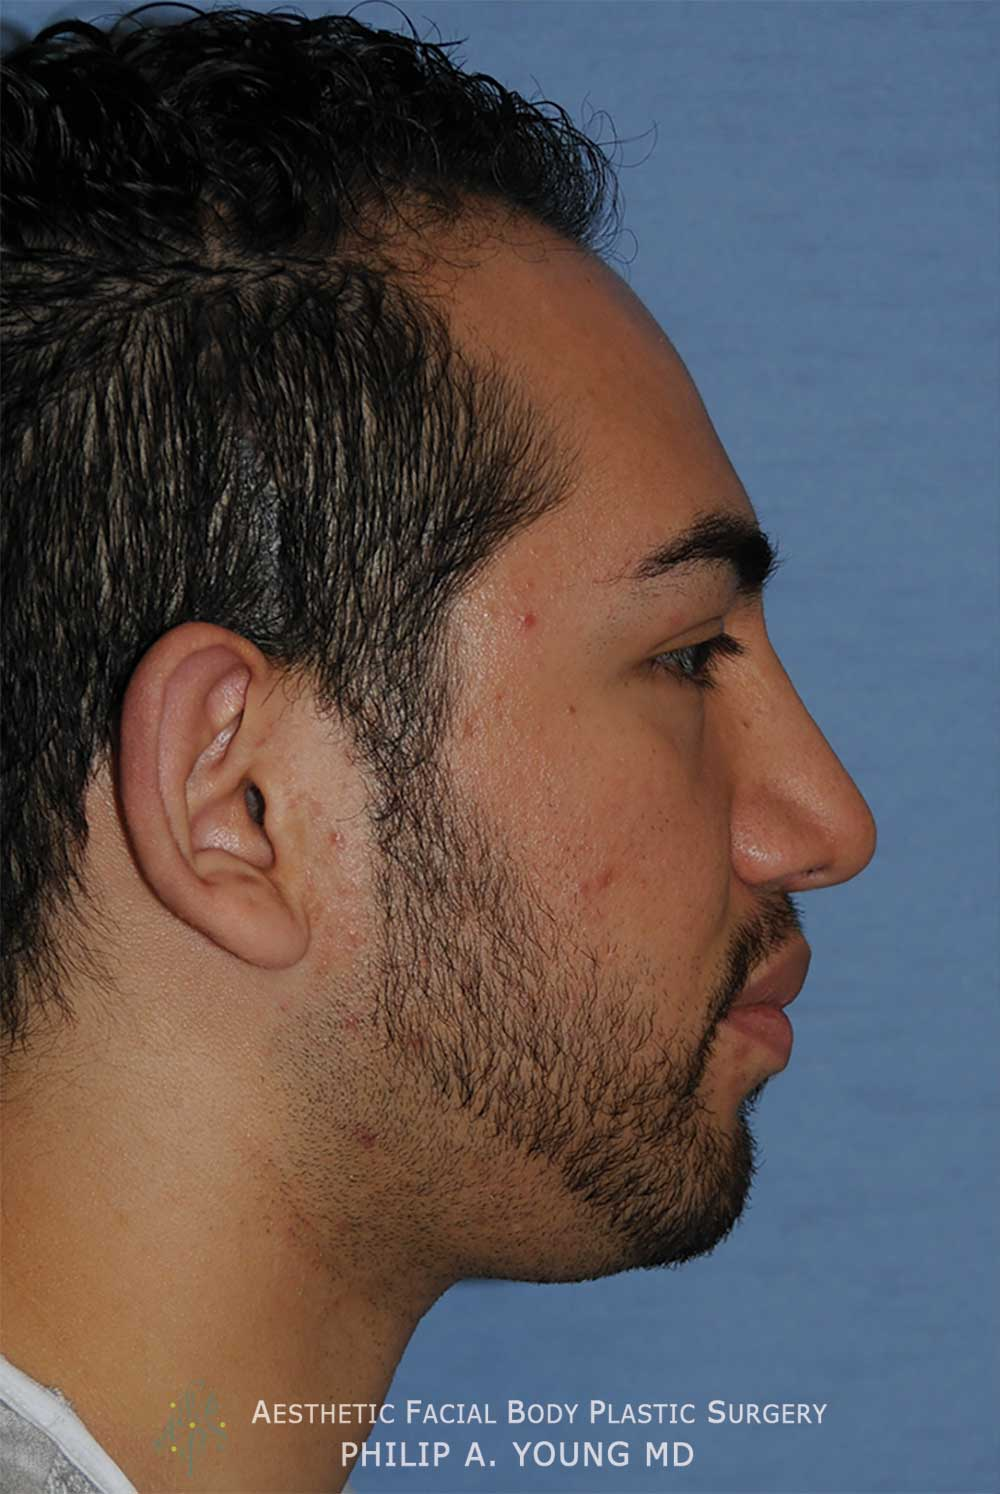 Before Otoplasty | Ear Reshaping Chin Implant for Prominent Ears, Retruded & Small Chin Right Side Image